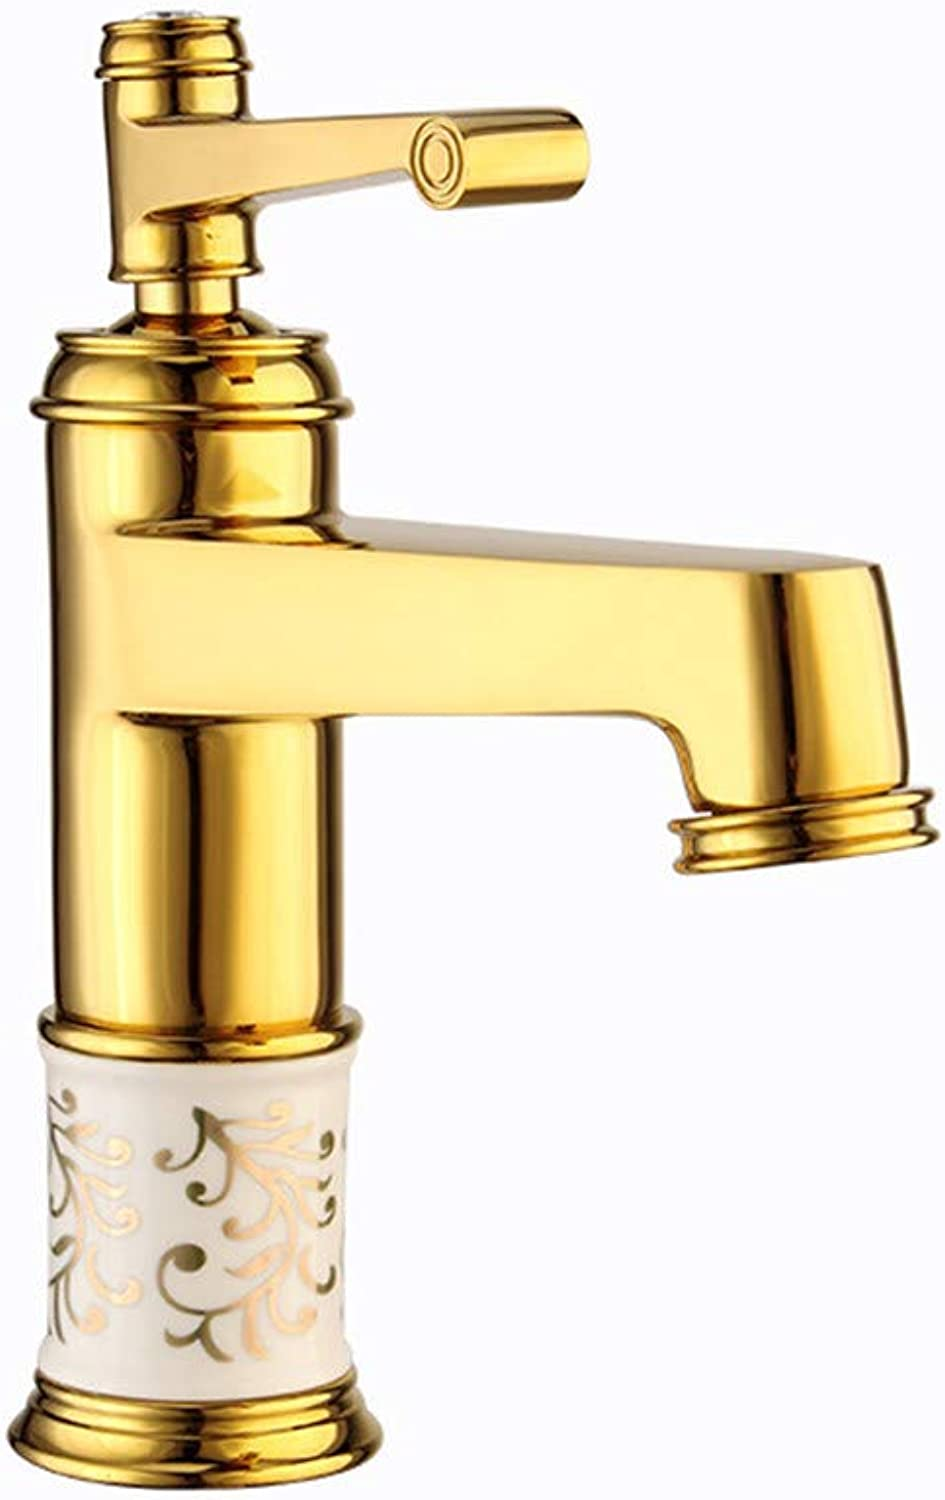 Copper Ceramic Faucet hot and Cold Water Mixing Basin Faucet Faucet